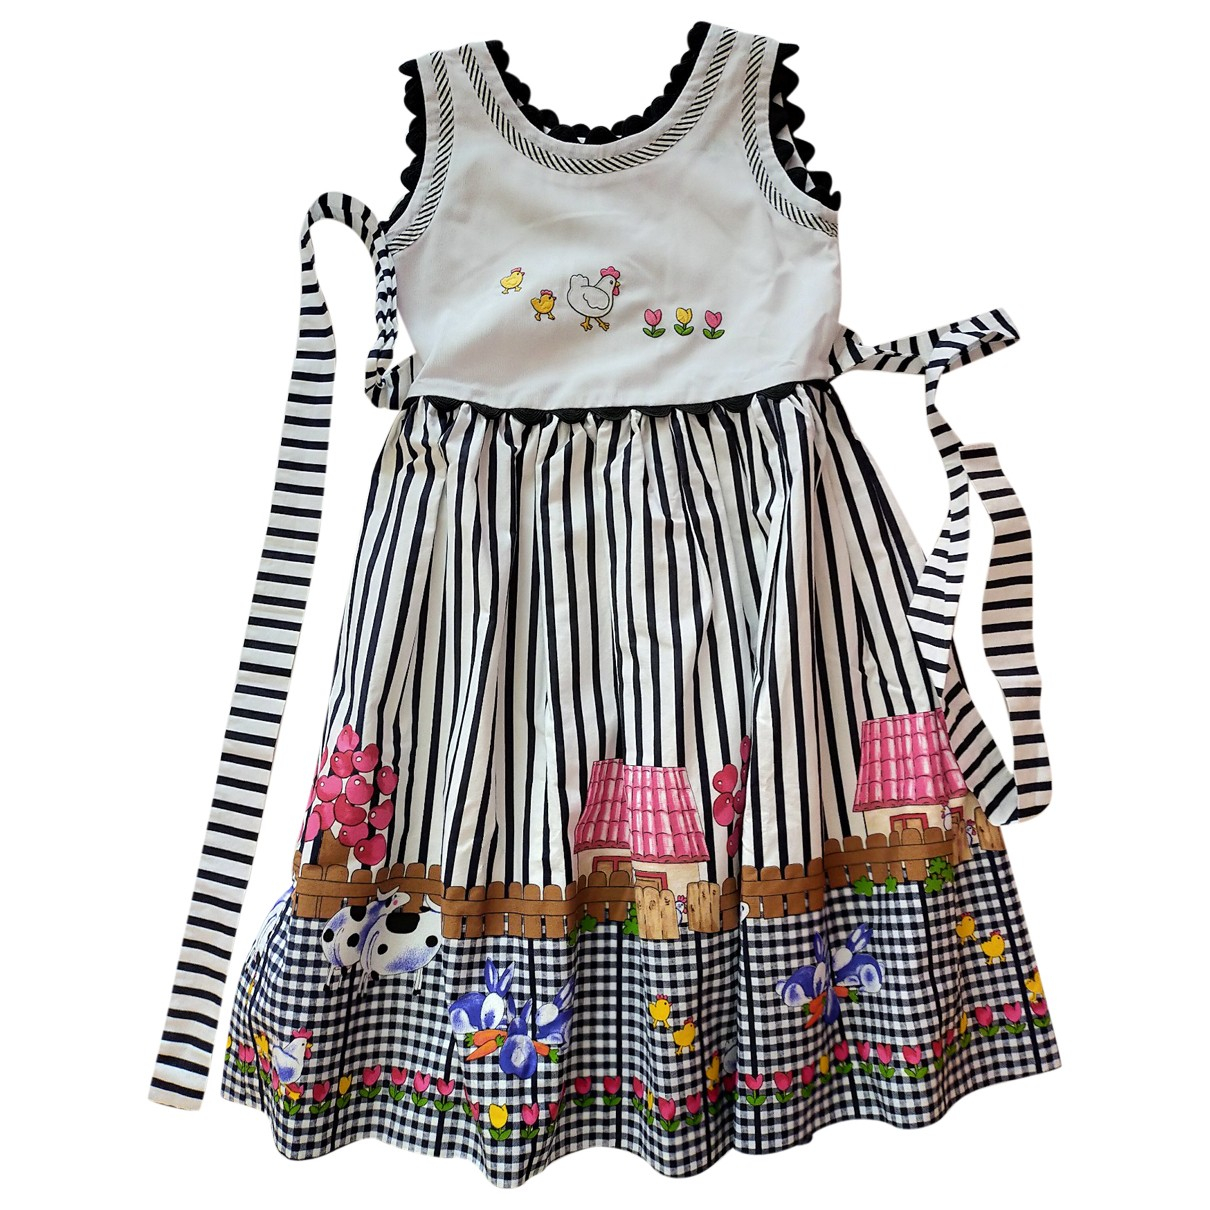 Non Signé / Unsigned N Multicolour Cotton dress for Kids 8 years - up to 128cm FR